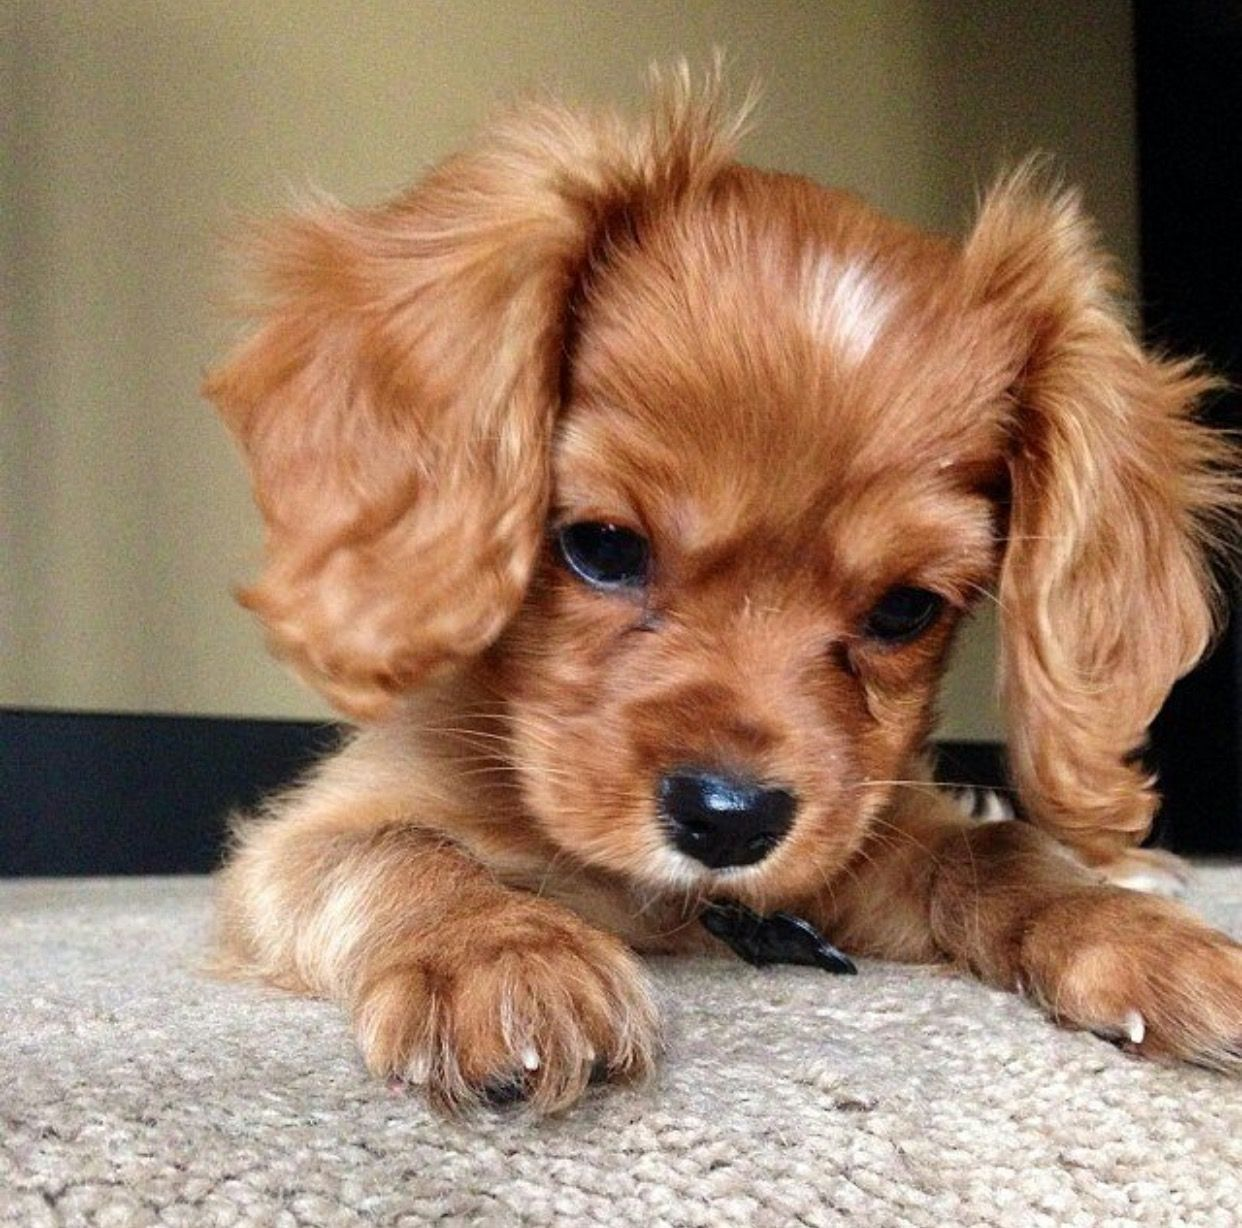 Dog Puppy Cute Pets Cute Animals Puppies